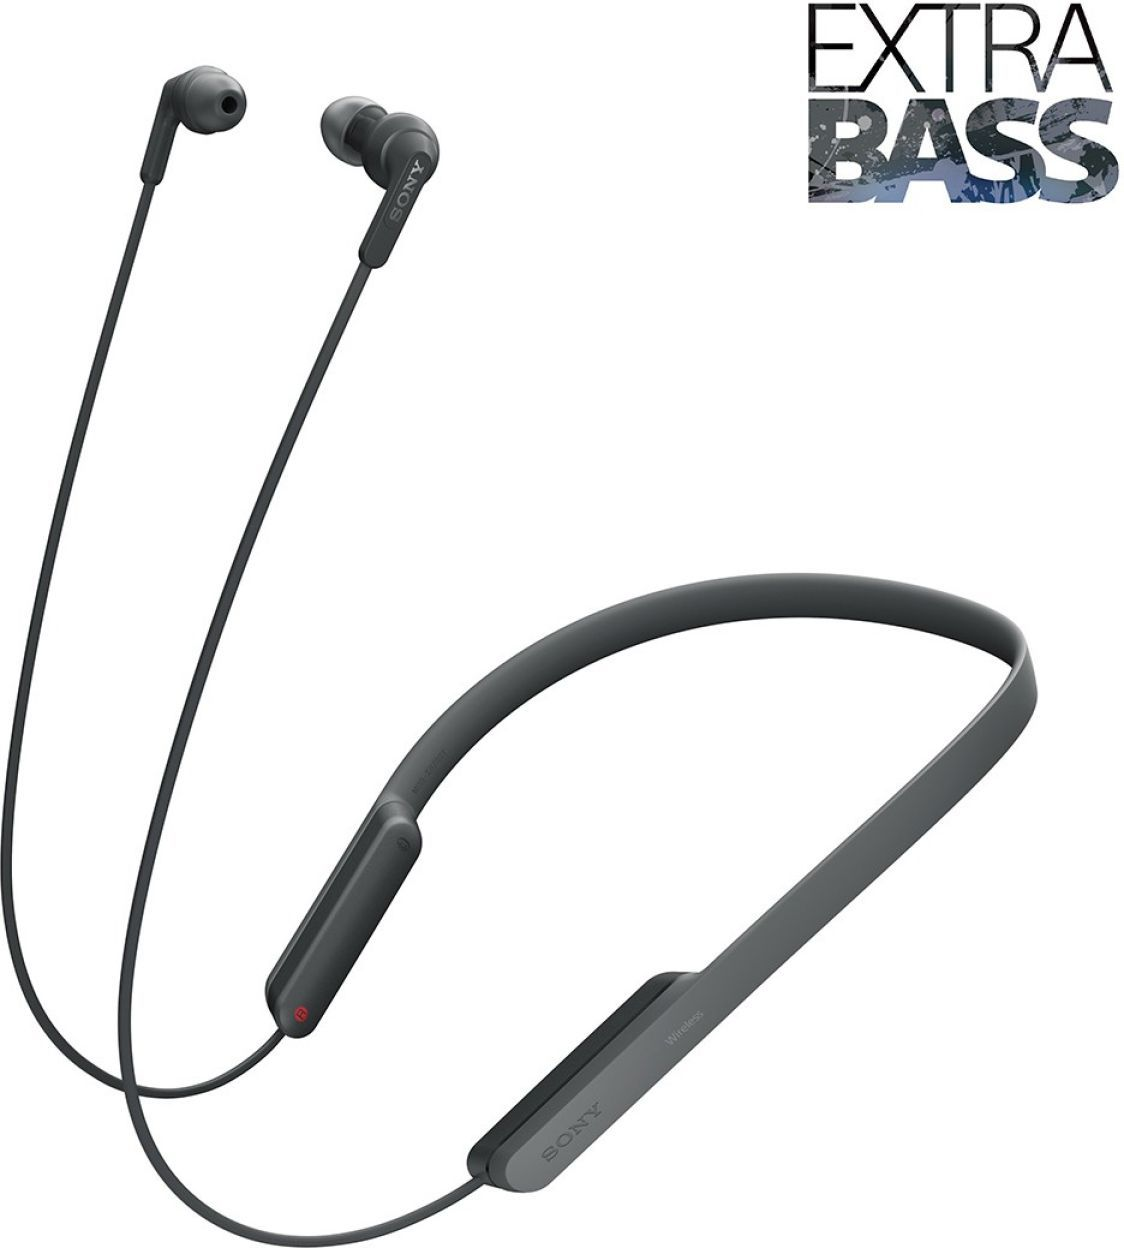 Topprice In Price Comparison In India Headset Price Bluetooth Headset Headset